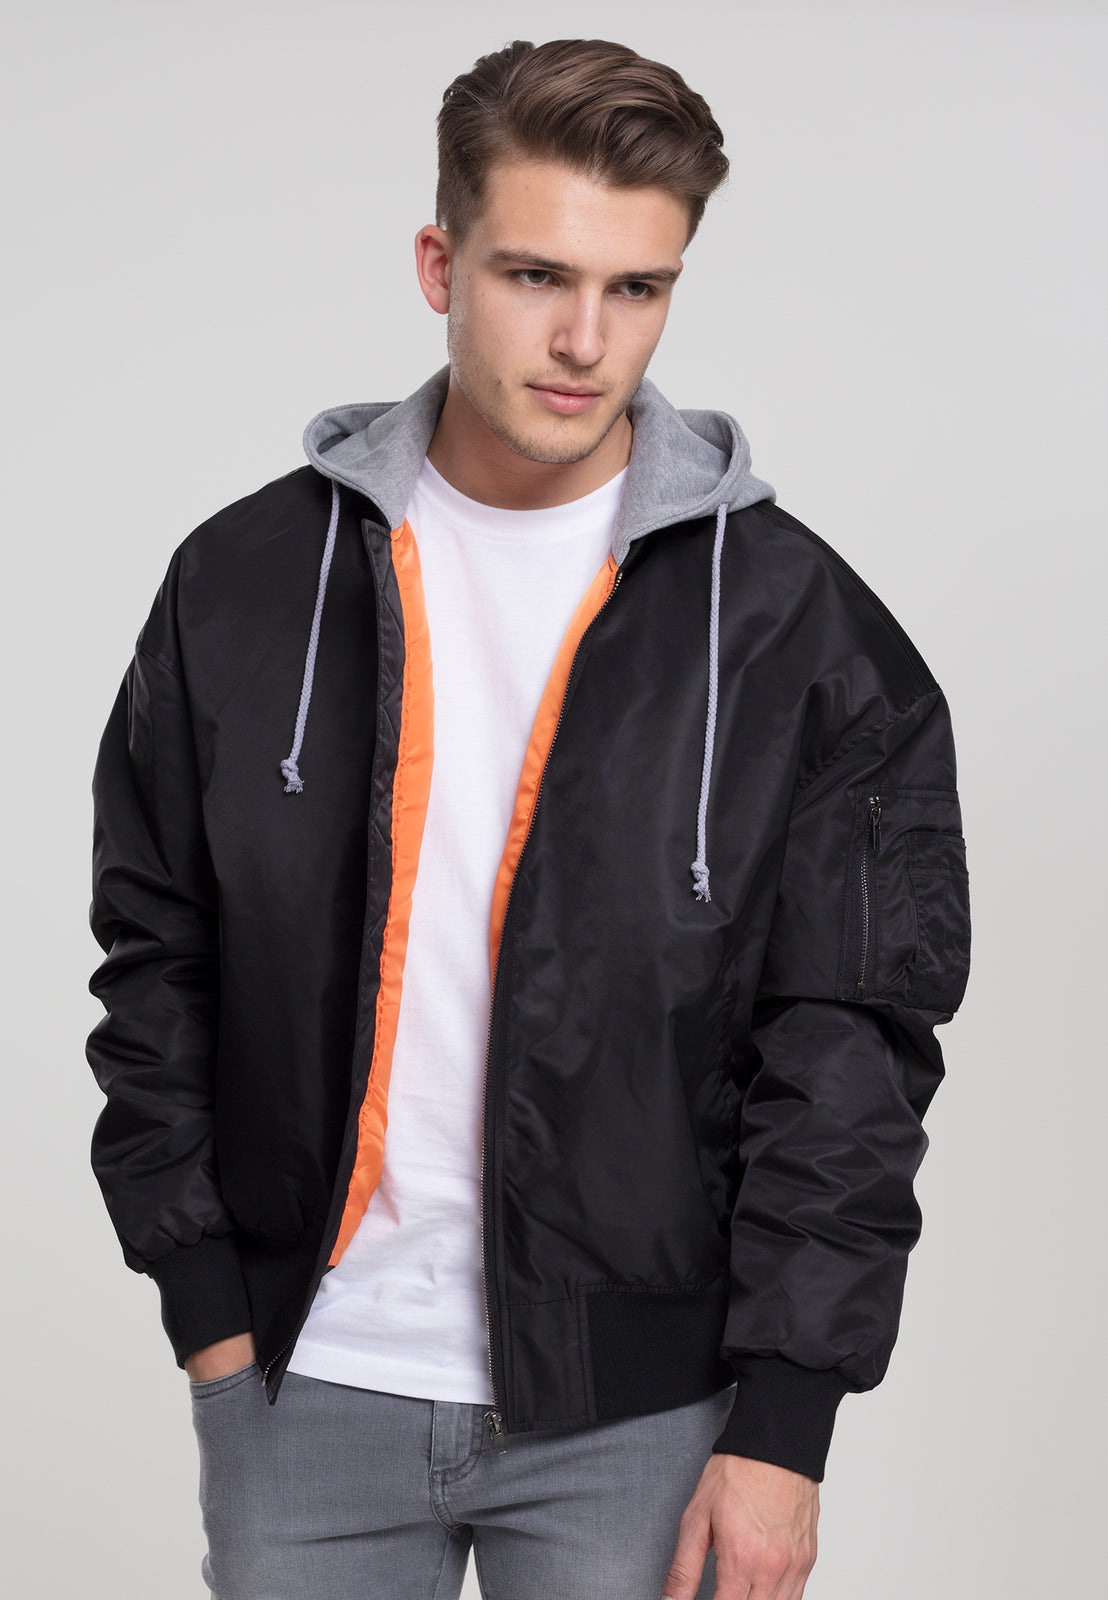 Hooded Oversized Bomber Jacket blk/gry